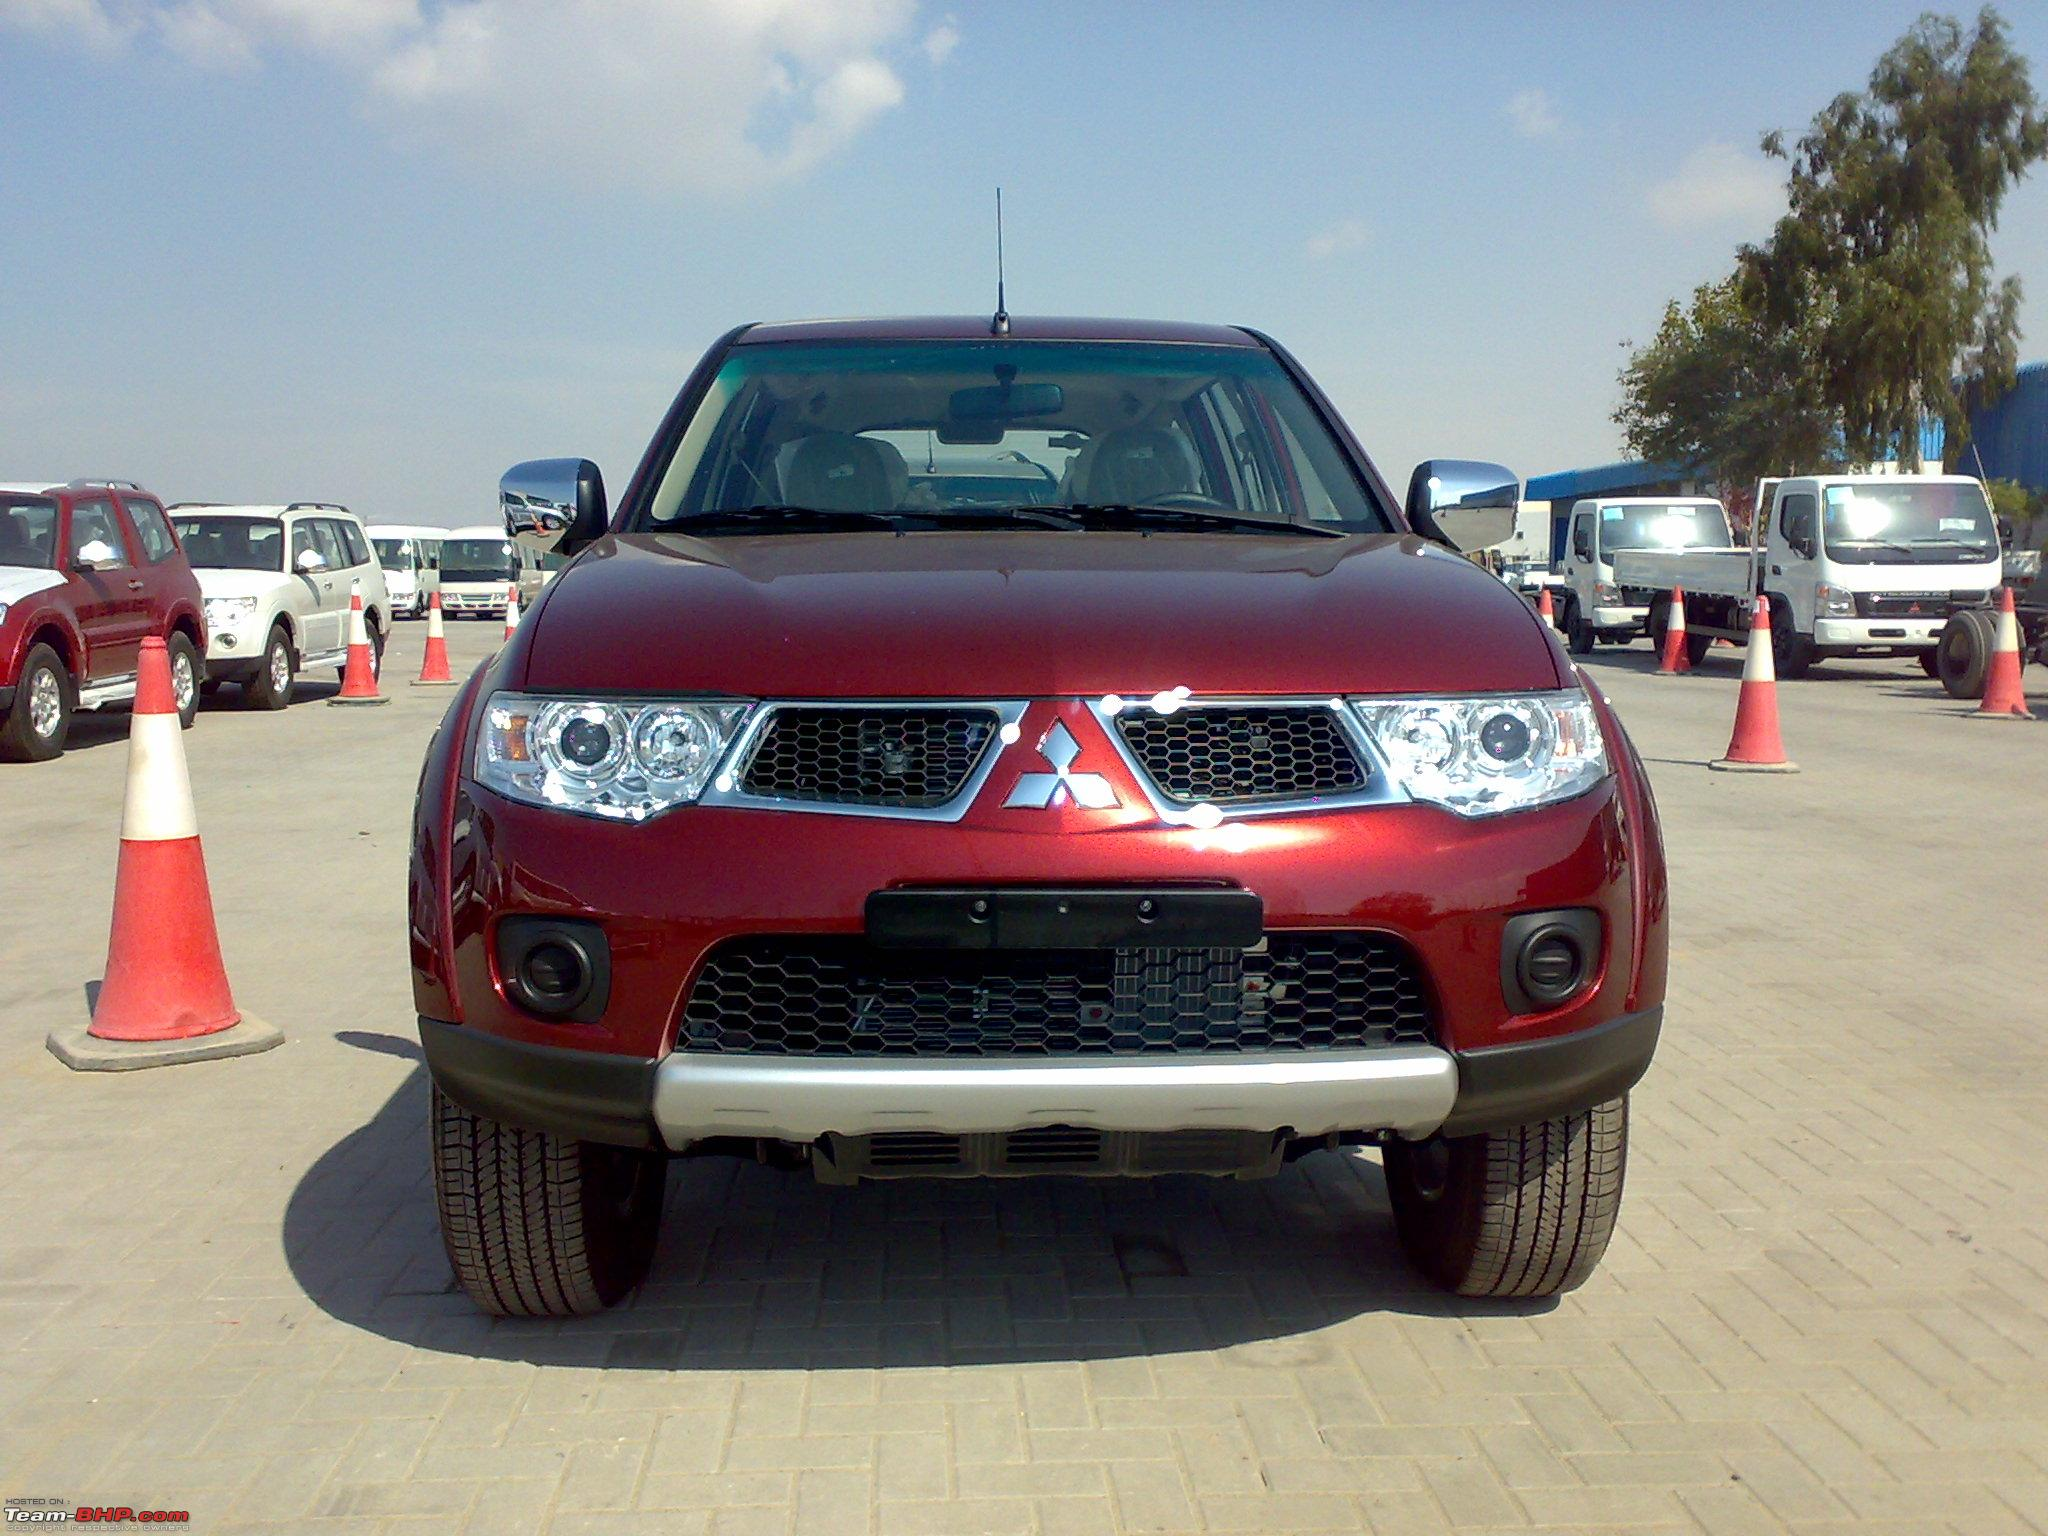 New Mitsubishi Pajero Sport Update Price Reduced To 22